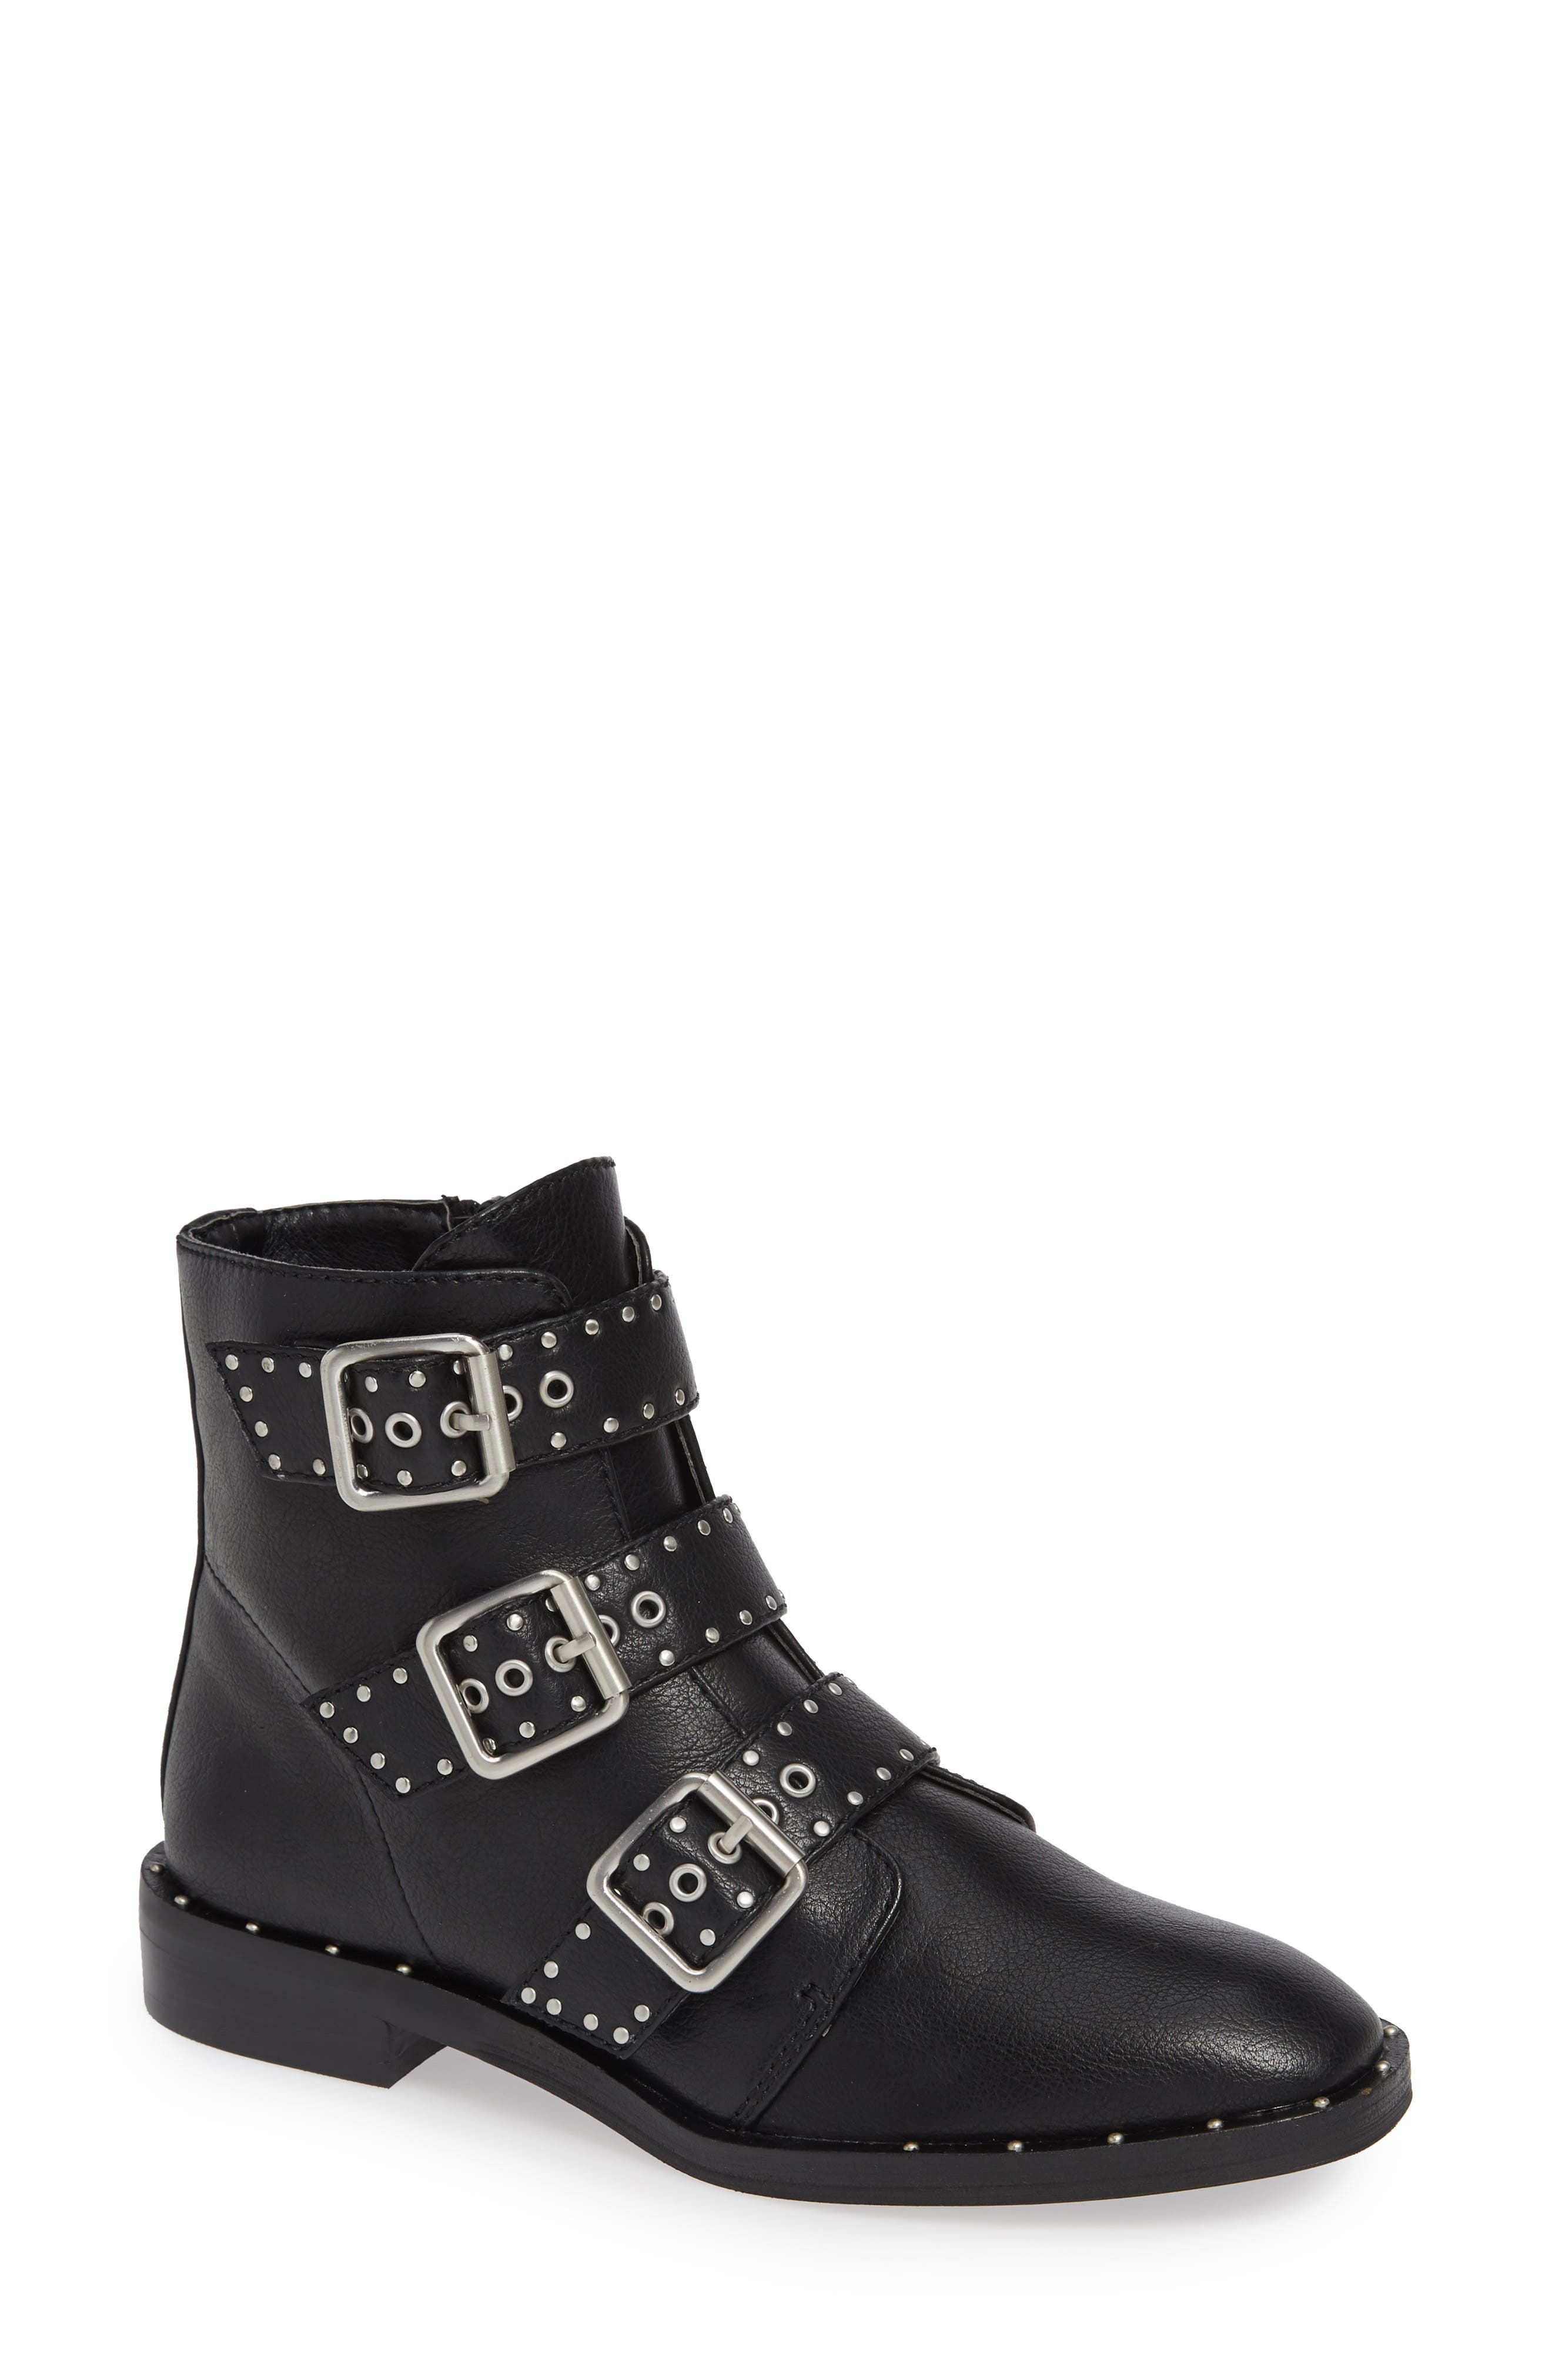 Chinese Laundry Chelsea Boot, Black